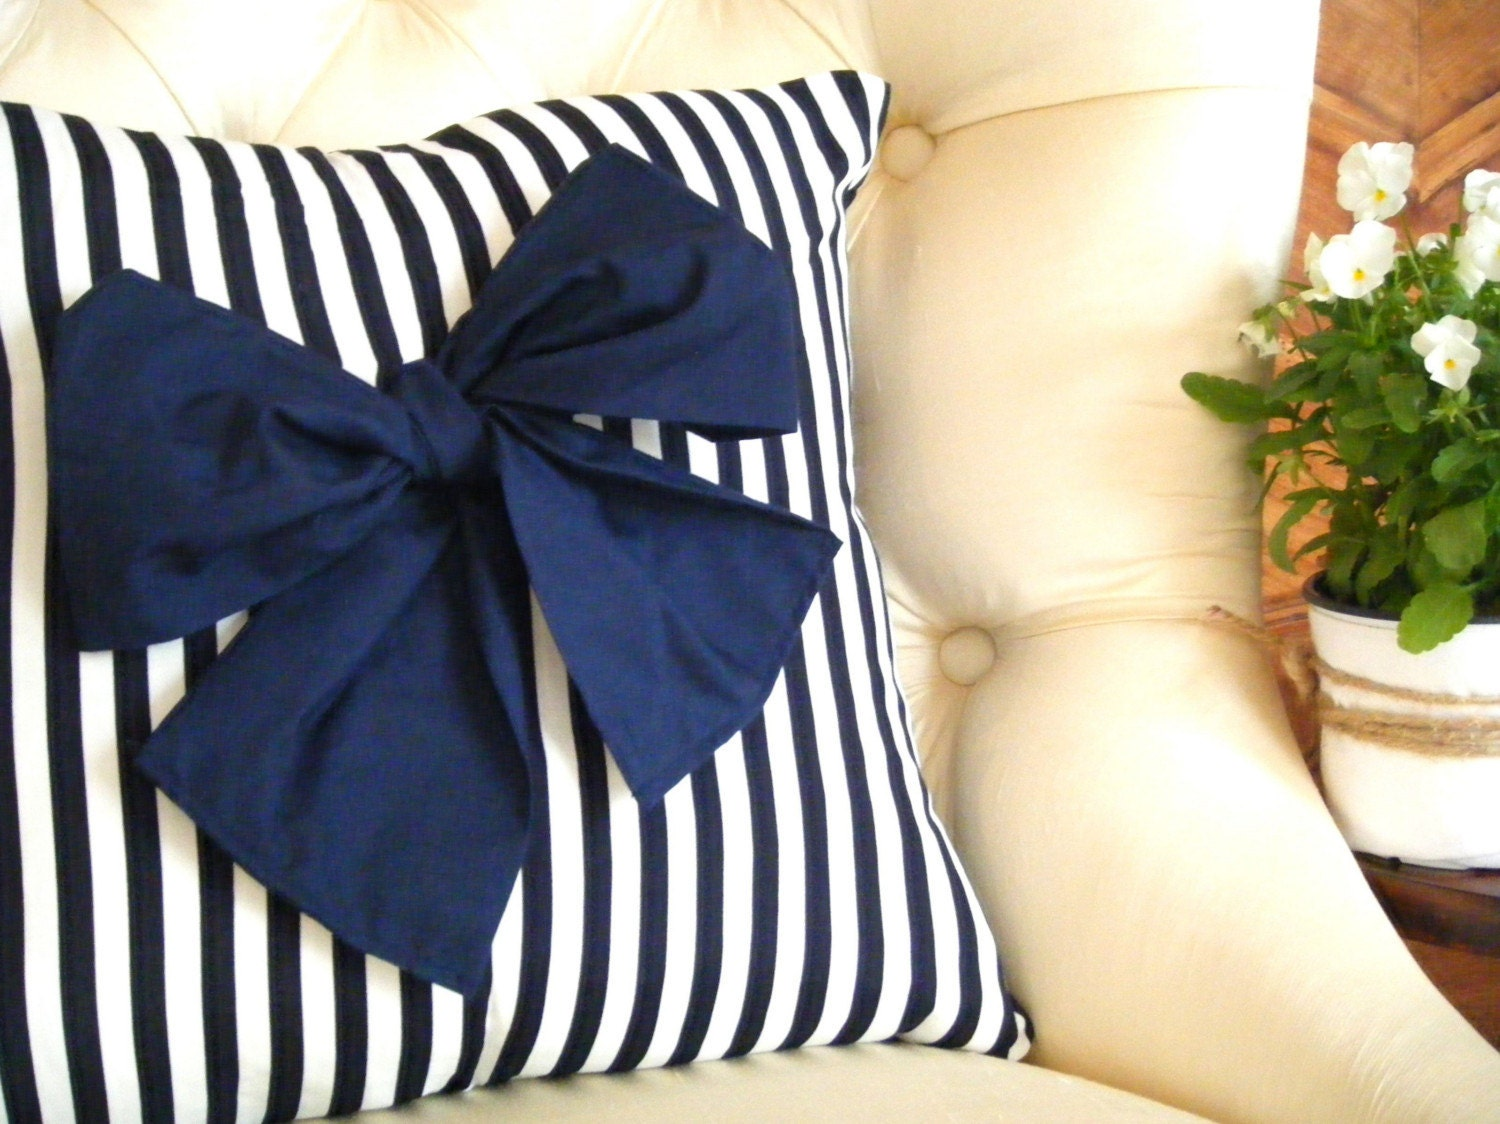 Preppy Love Cushion - Navy blue and white striped cushion with large navy blue bow